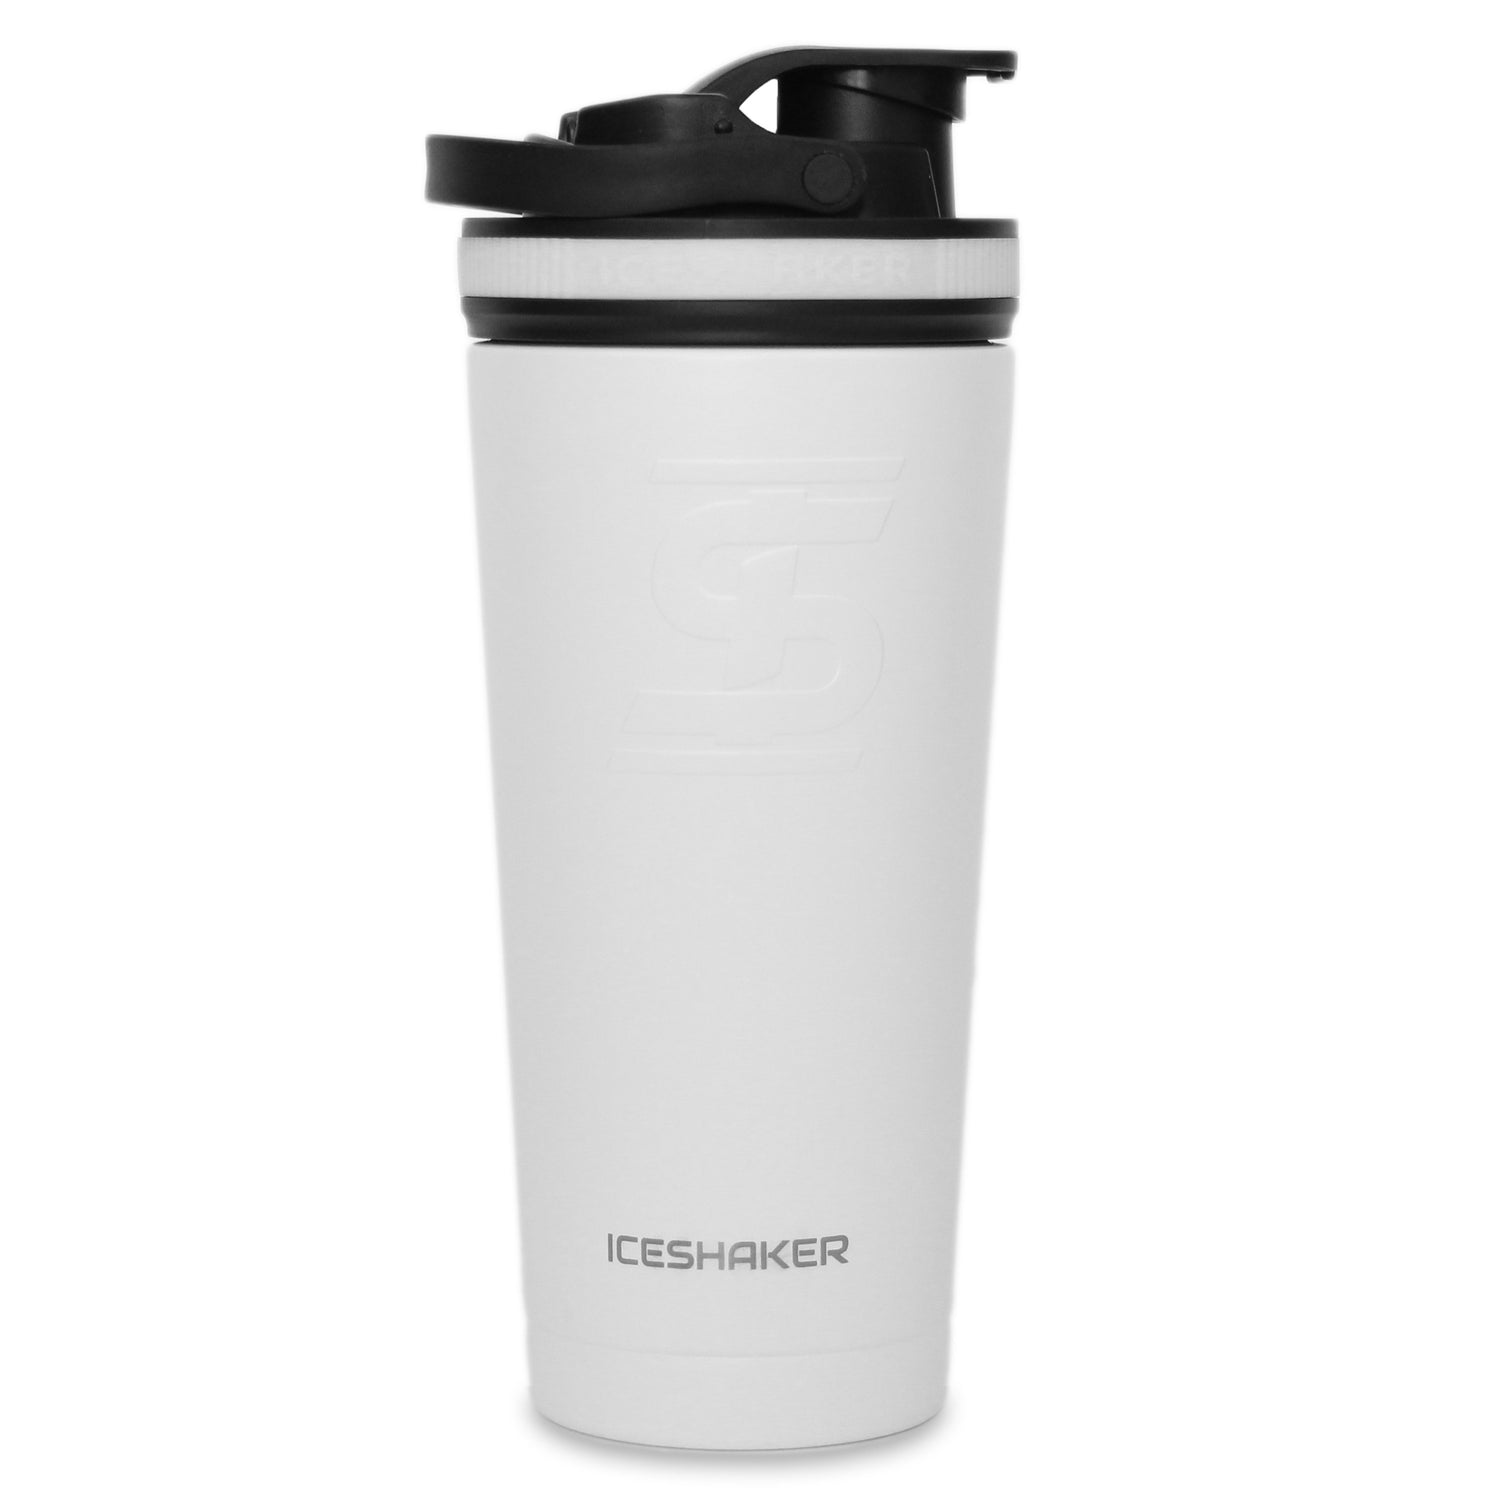 Ice Shaker 26oz Shaker Bottle - White